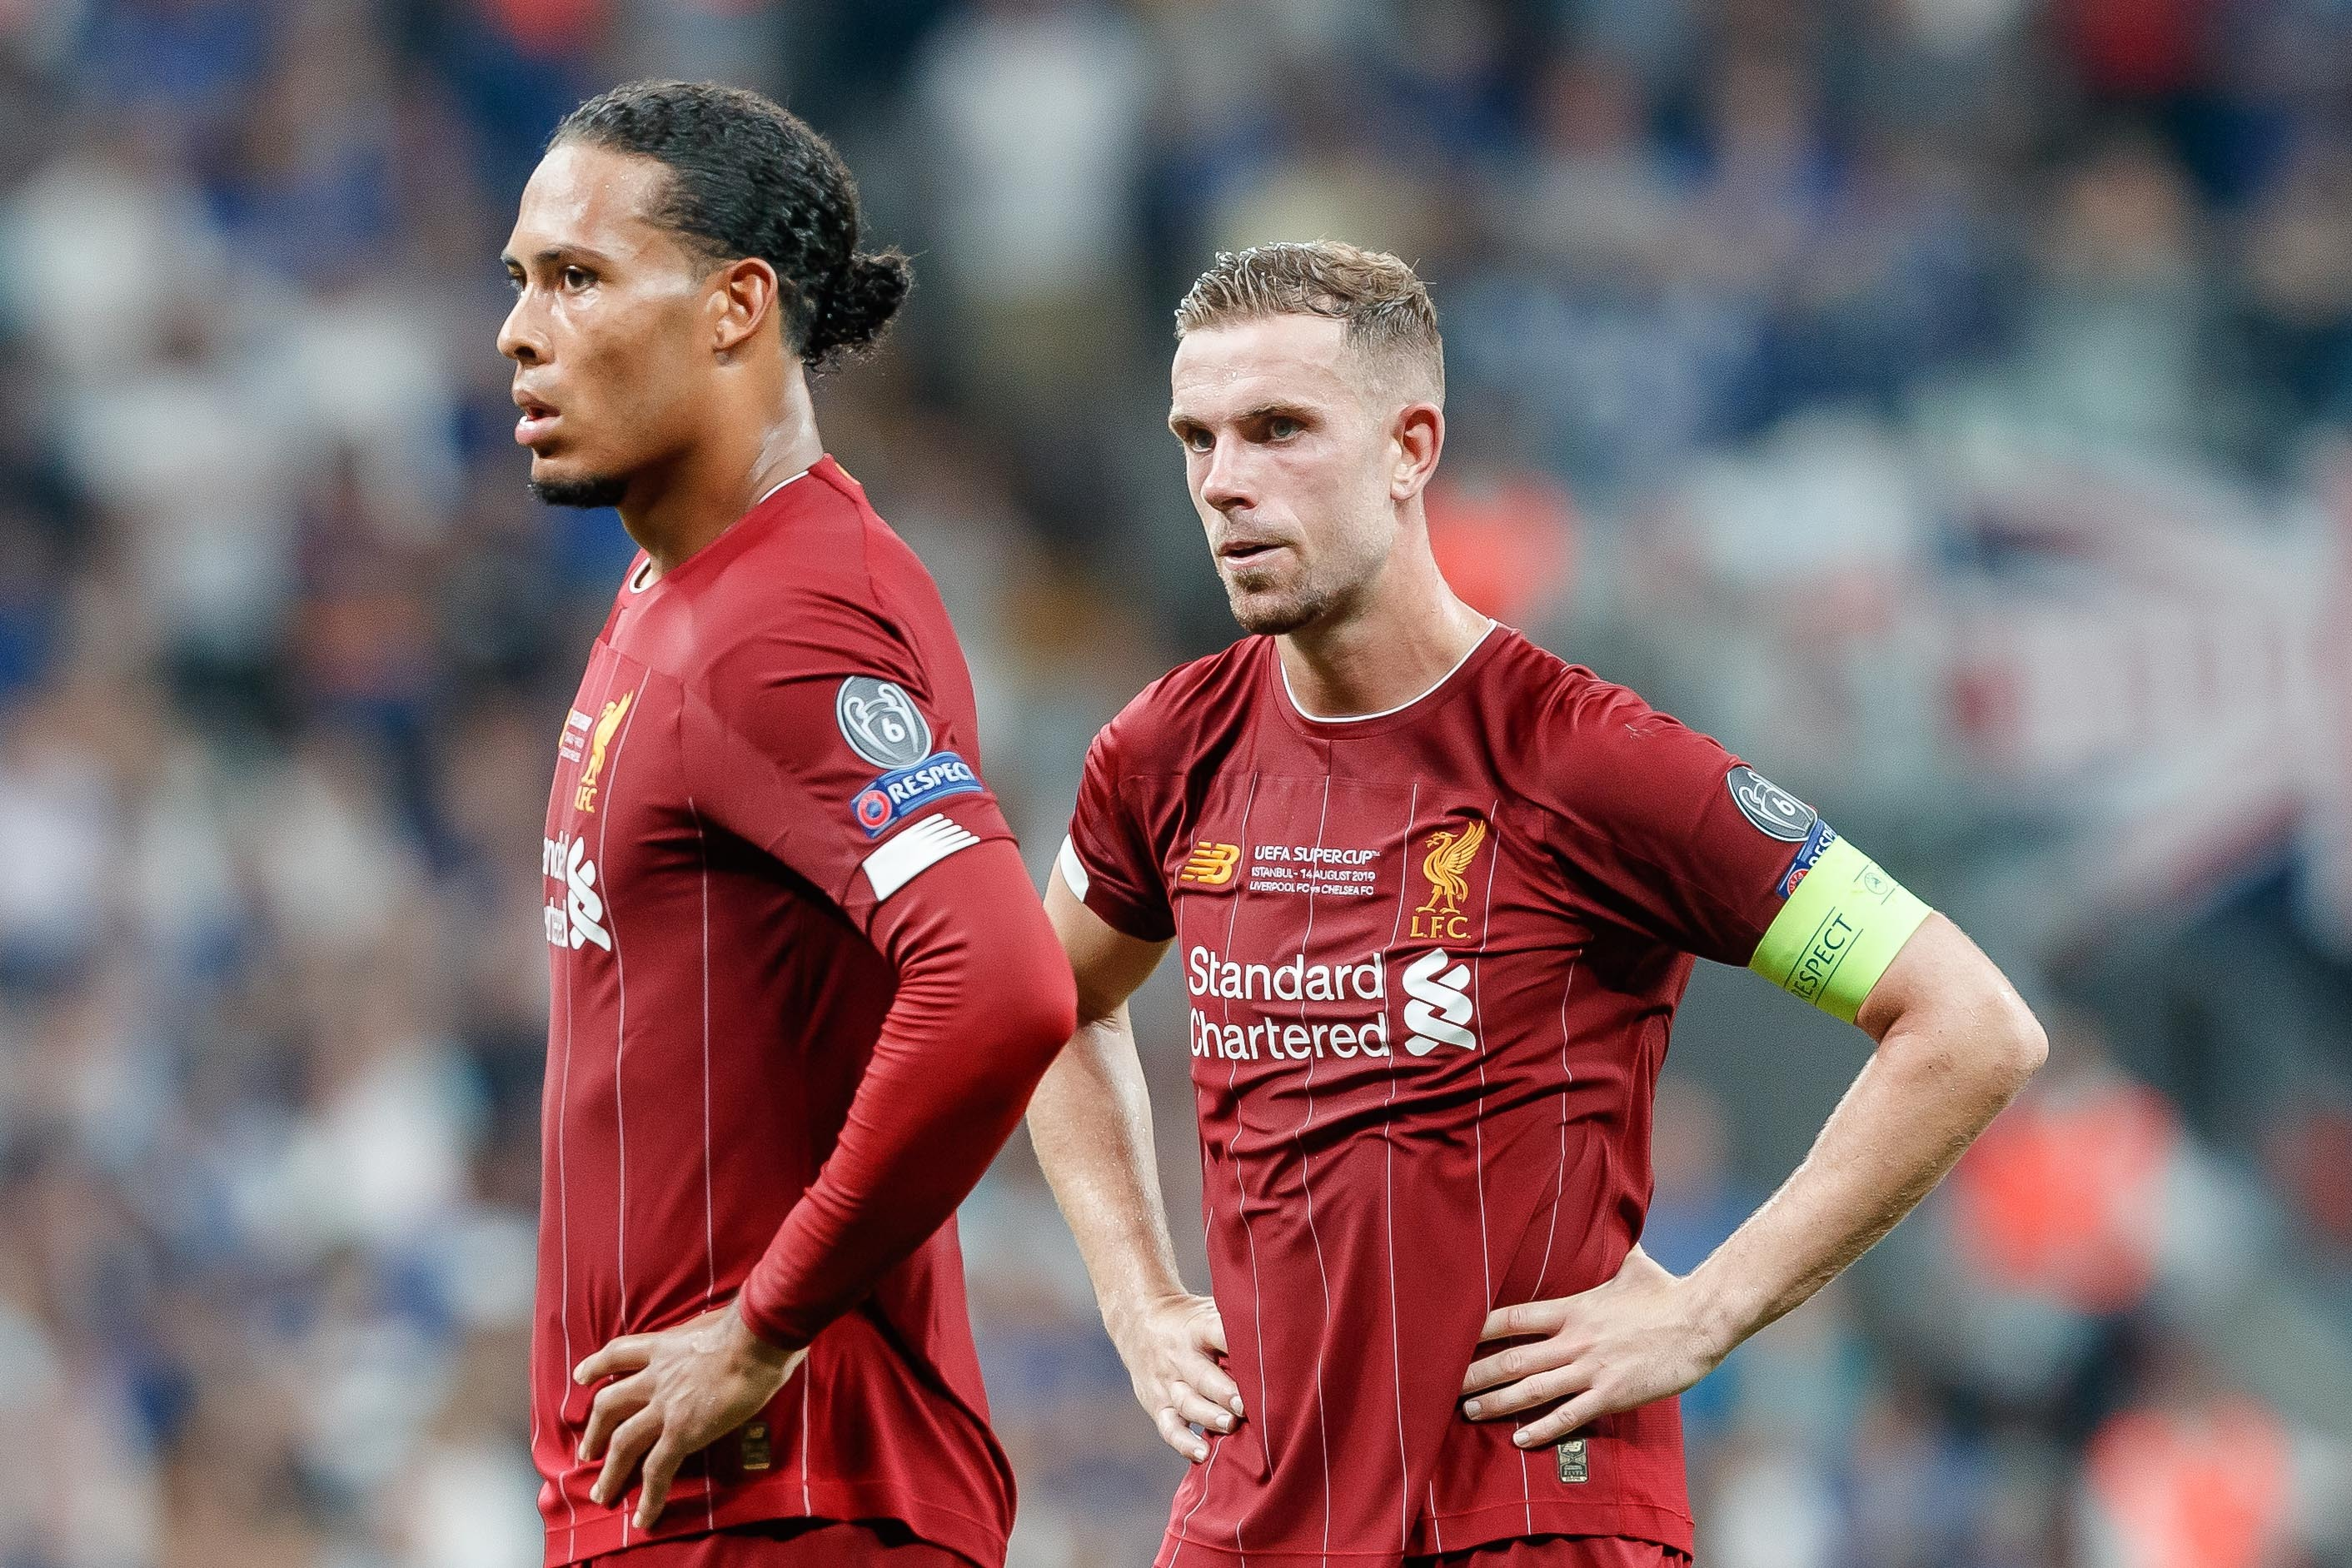 Rio Ferdinand Says Liverpool S Virgil Van Dijk Is Not Player Of The Year Bleacher Report Latest News Videos And Highlights